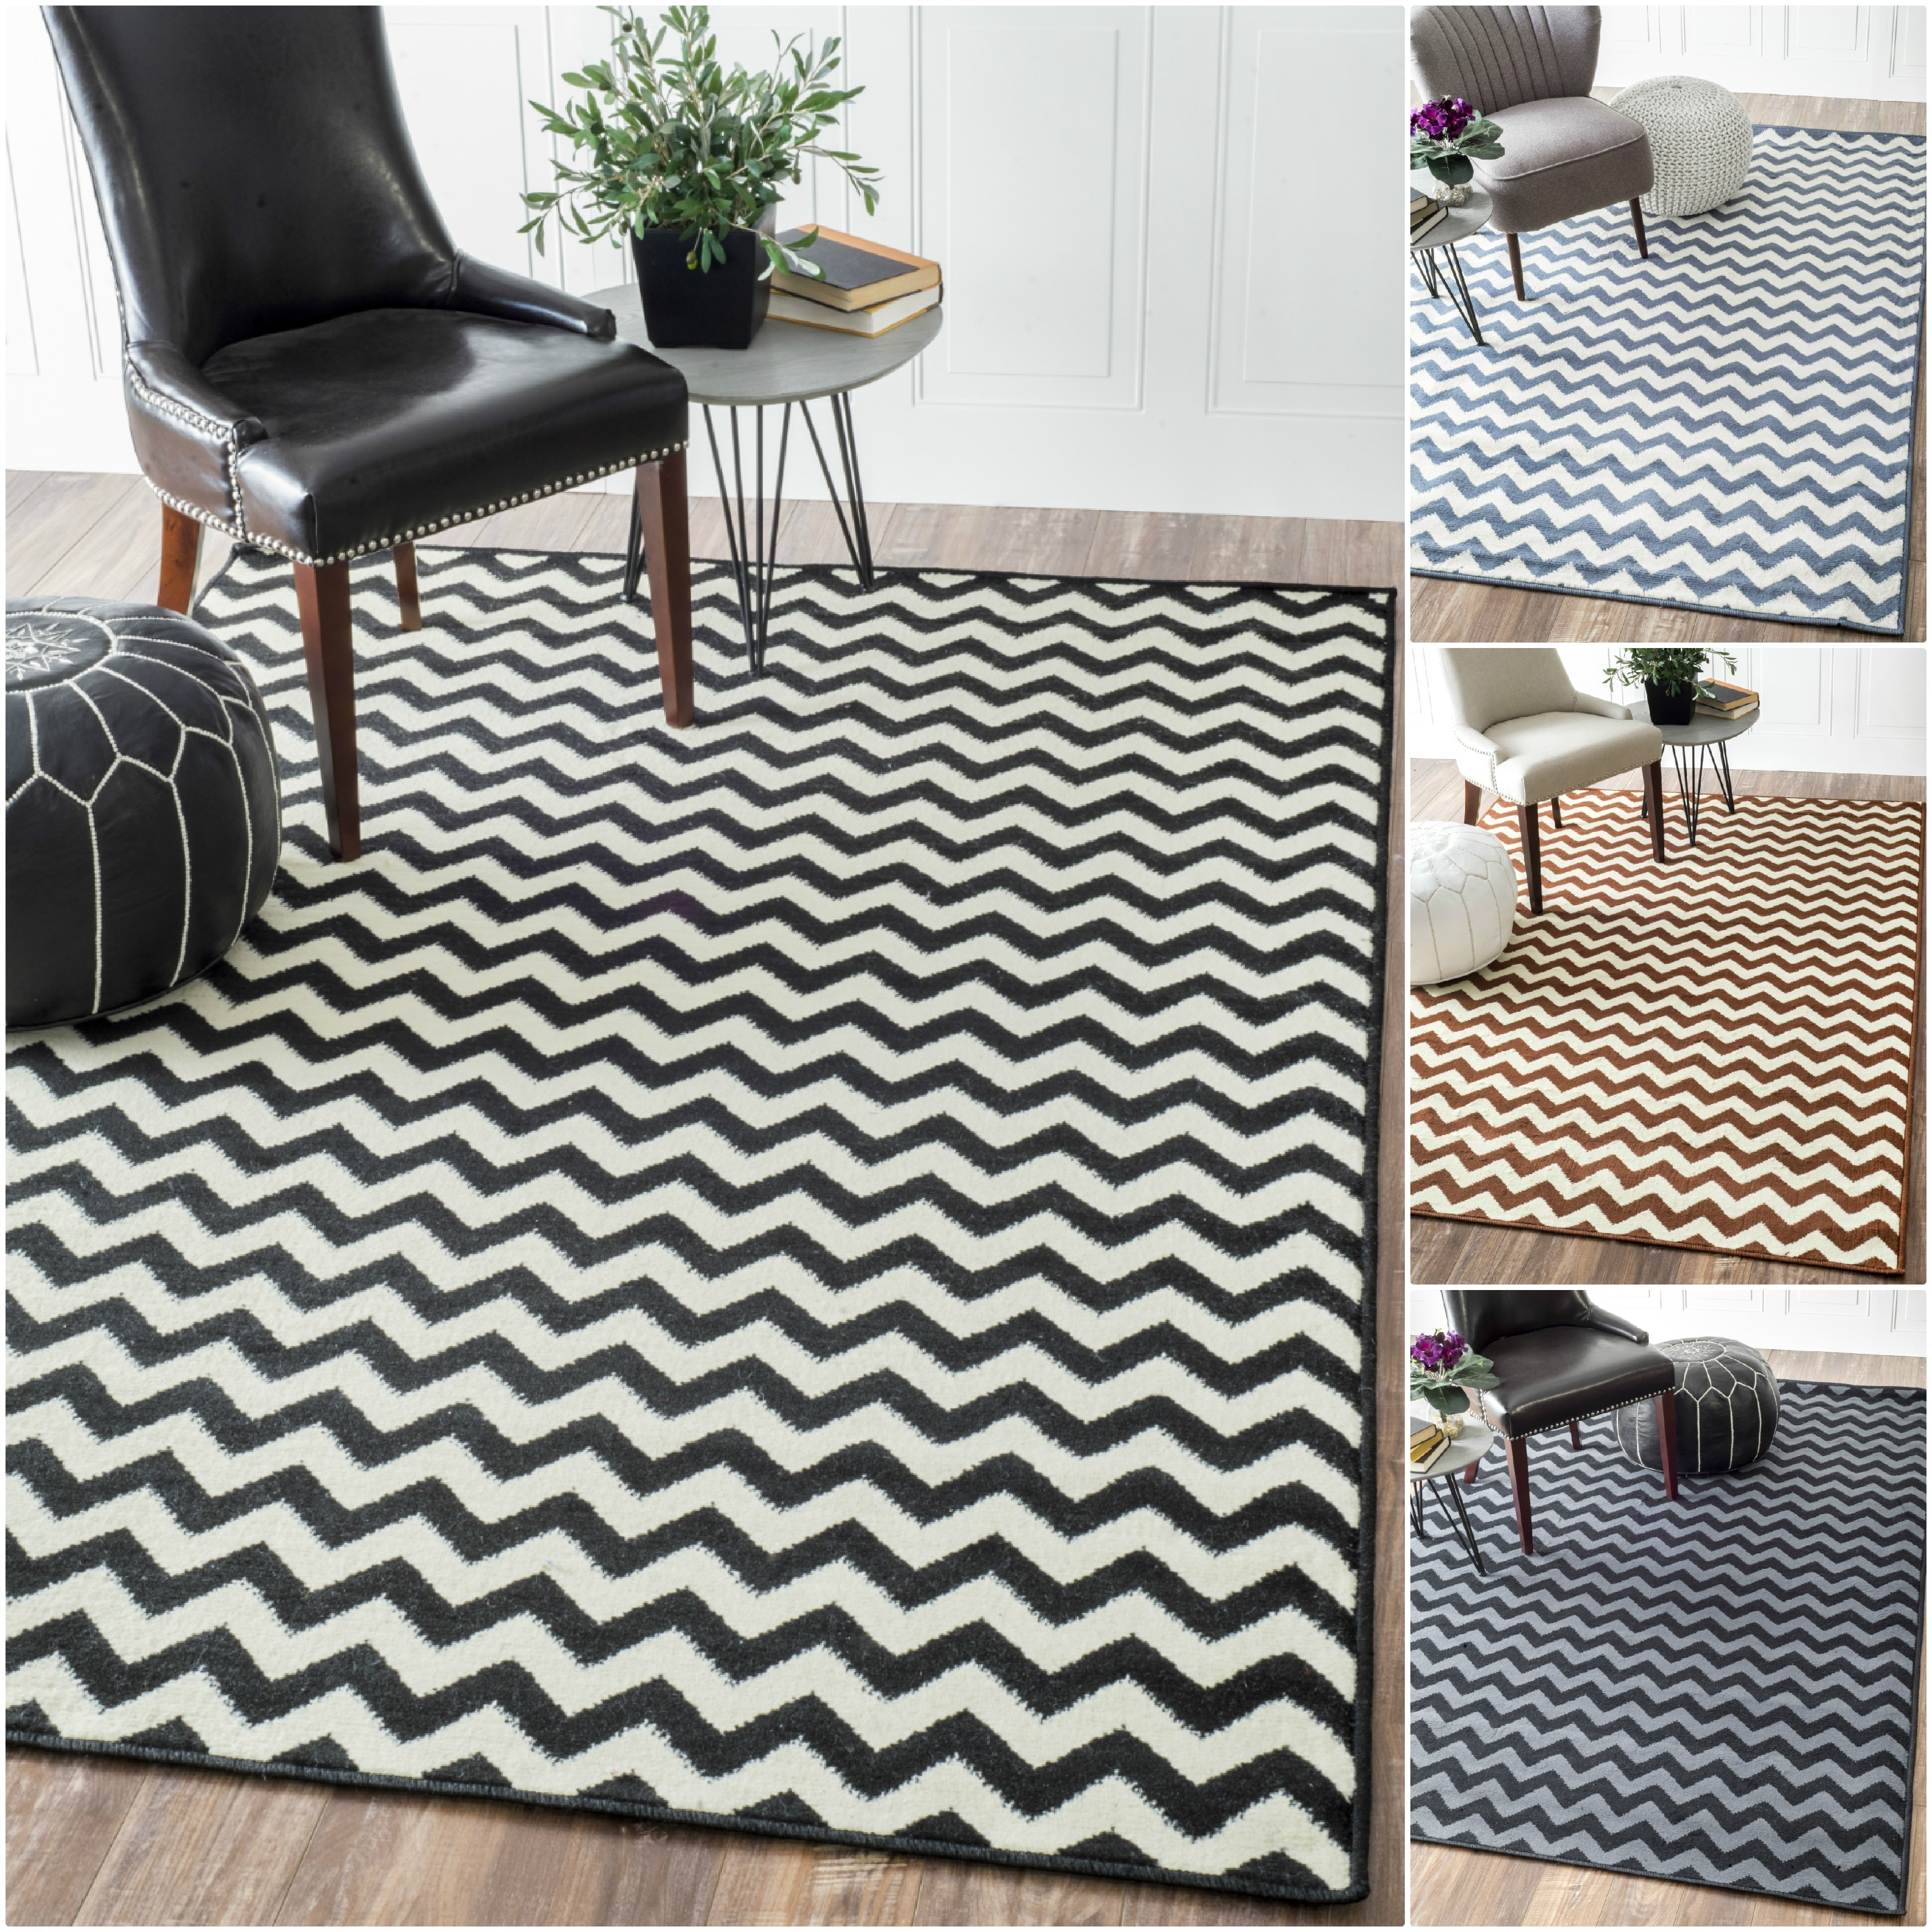 Williamsburg Bedford Chevron Zebra Rug (5' x 8') - Thumbnail 0